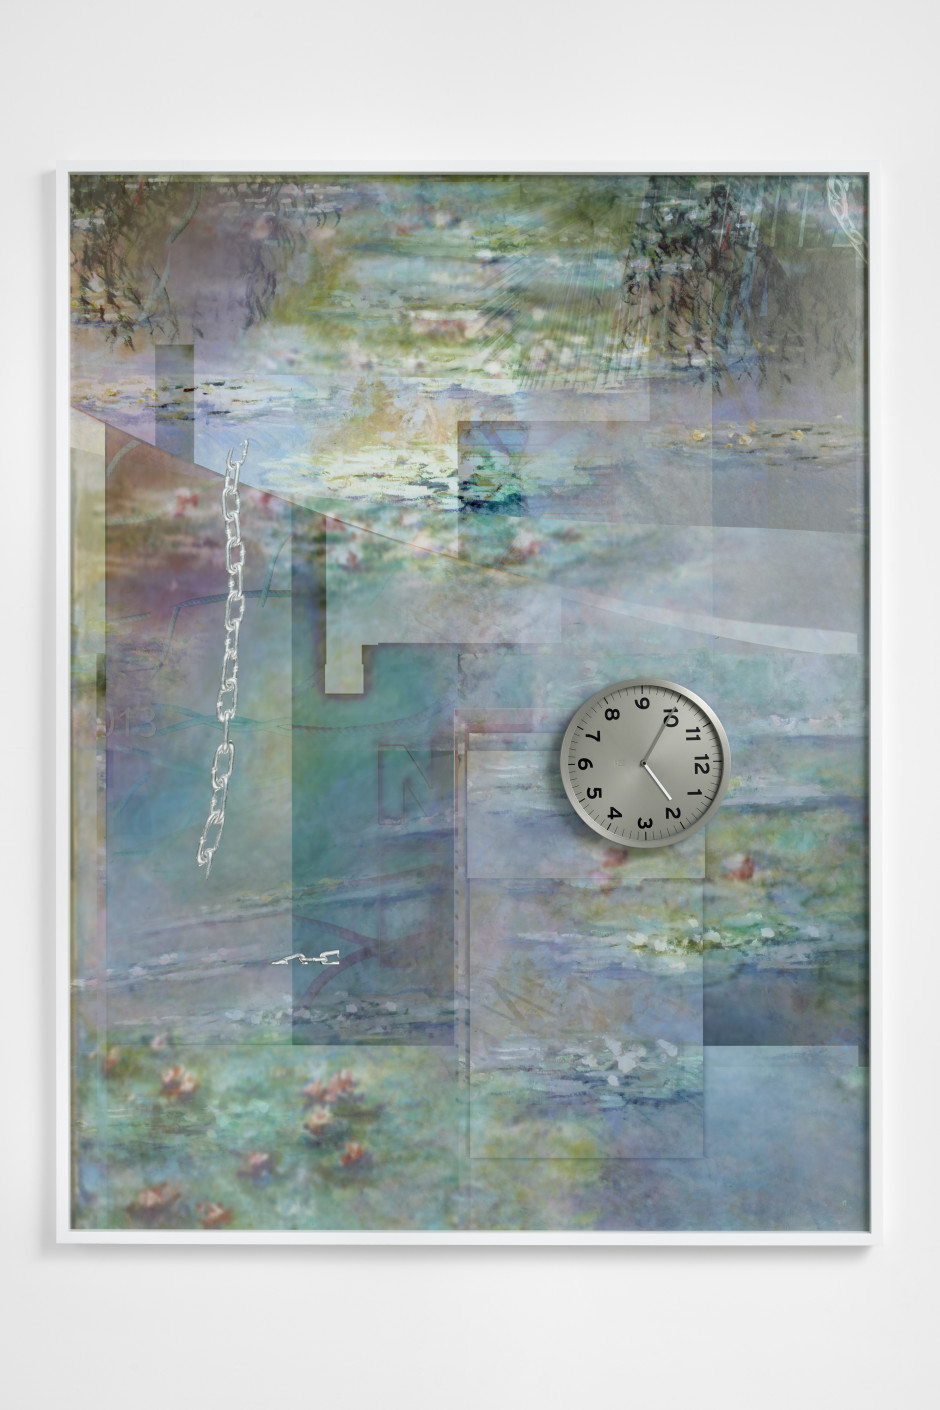 Nymphaea careulea, 2018  archival pigment print, clocks  205 x 156 x 5.7 cm / 80 ¾ x 61 ⅜ x 2 ¼ in